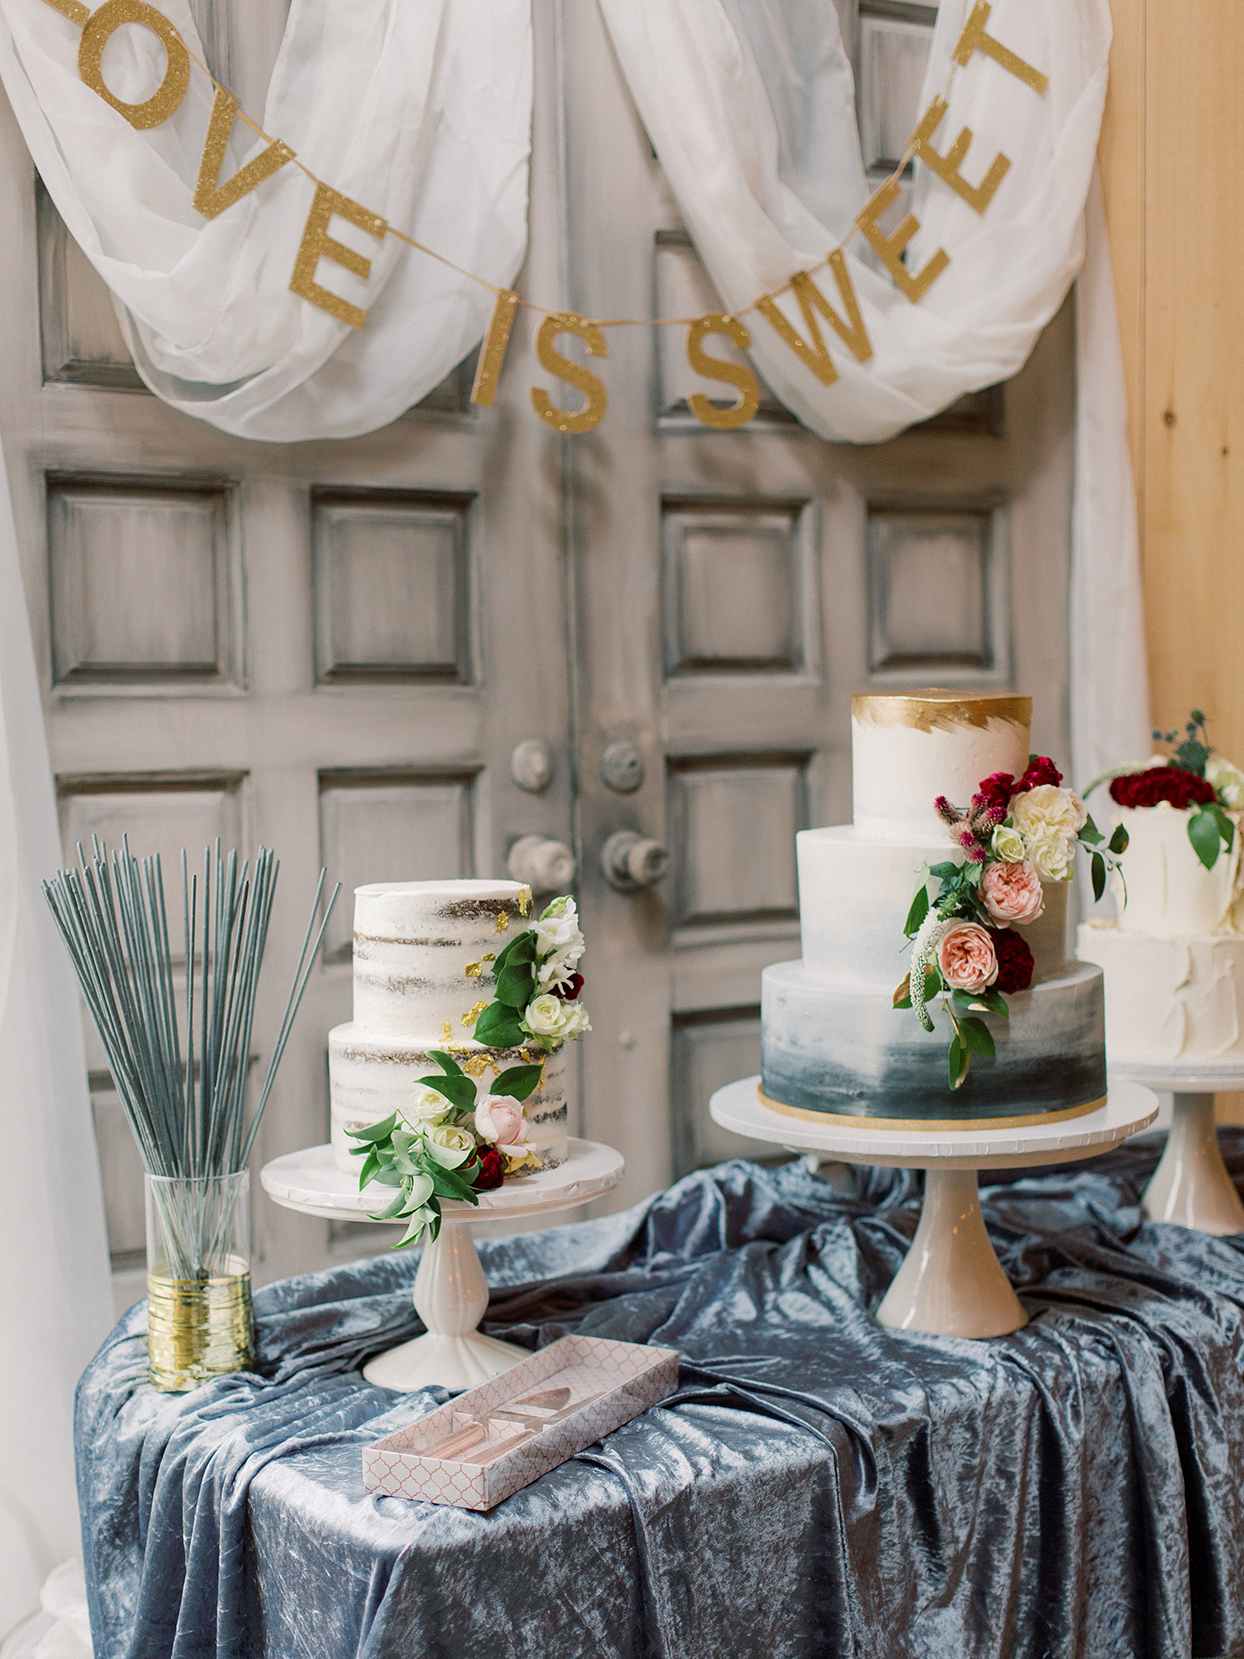 rebecca isaac wedding cakes with flowers